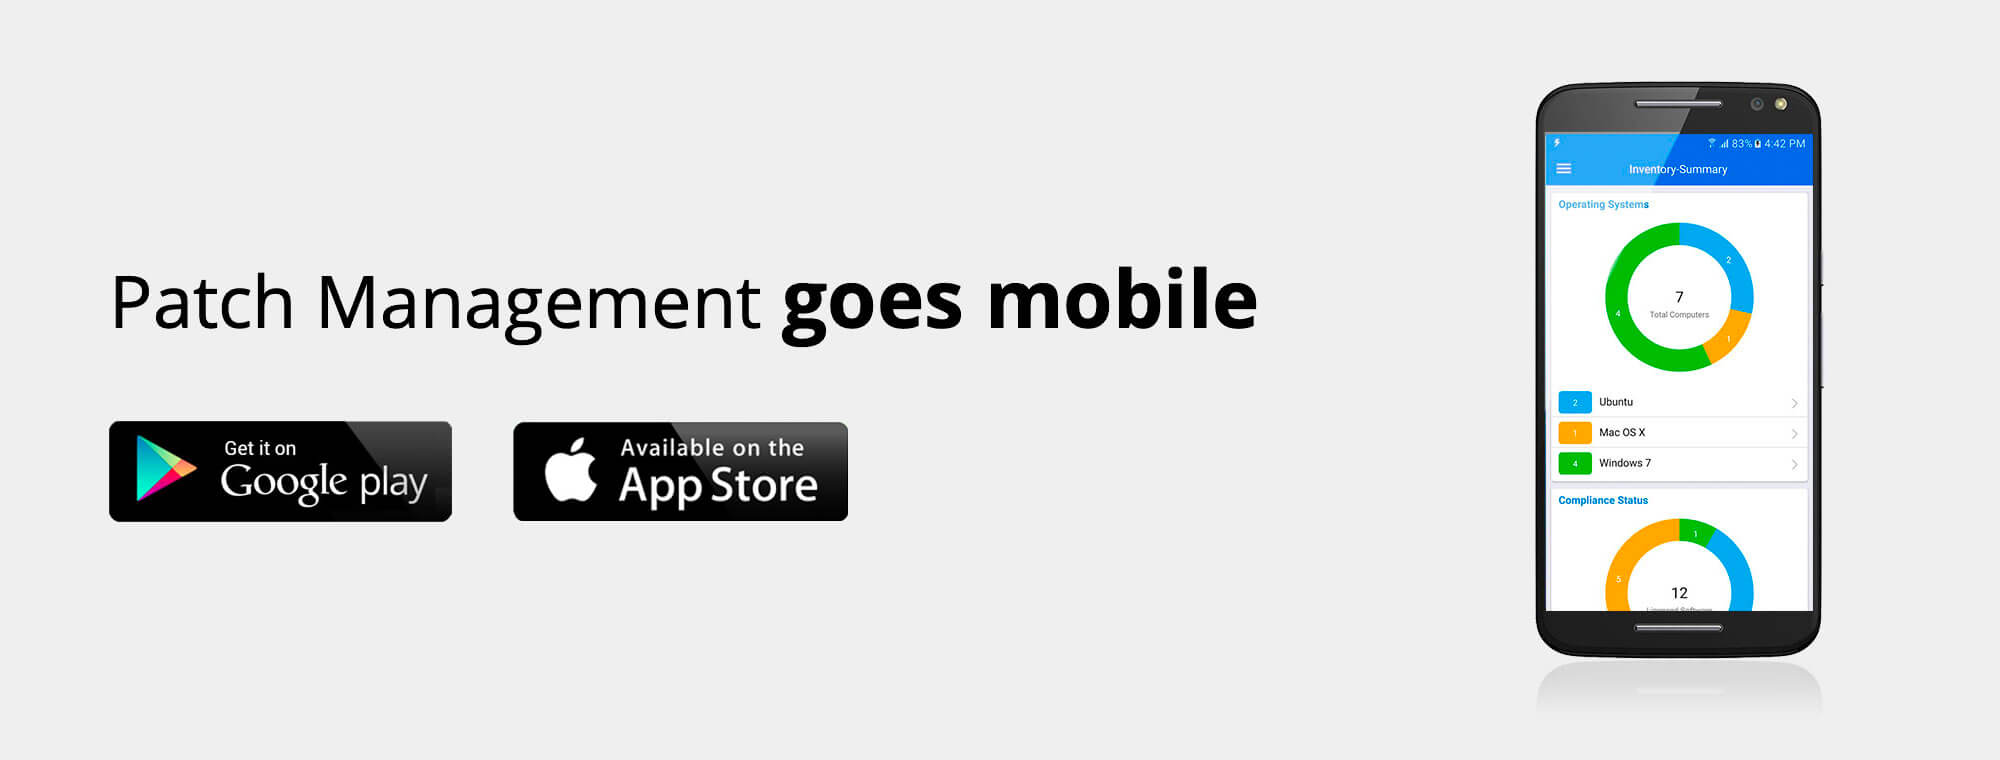 Patch Management using Mobile App